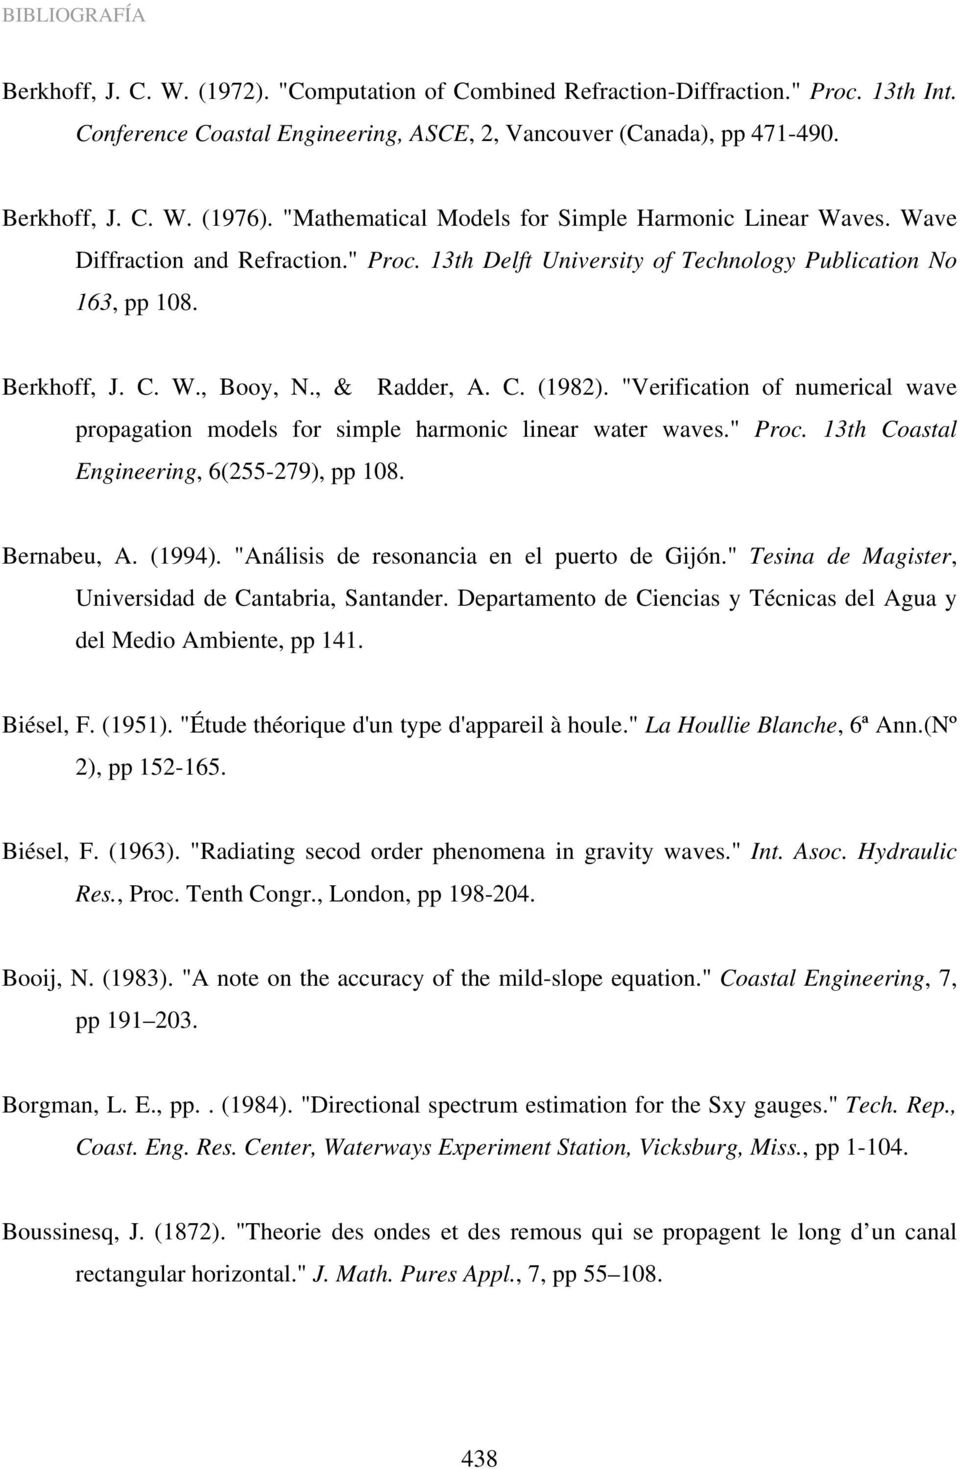 ", & Radder, A. C. (1982). ""Verification of numerical wave propagation models for simple harmonic linear water waves."" Proc. 13th Coastal Engineering, 6(255-279), pp 108. Bernabeu, A. (1994)."